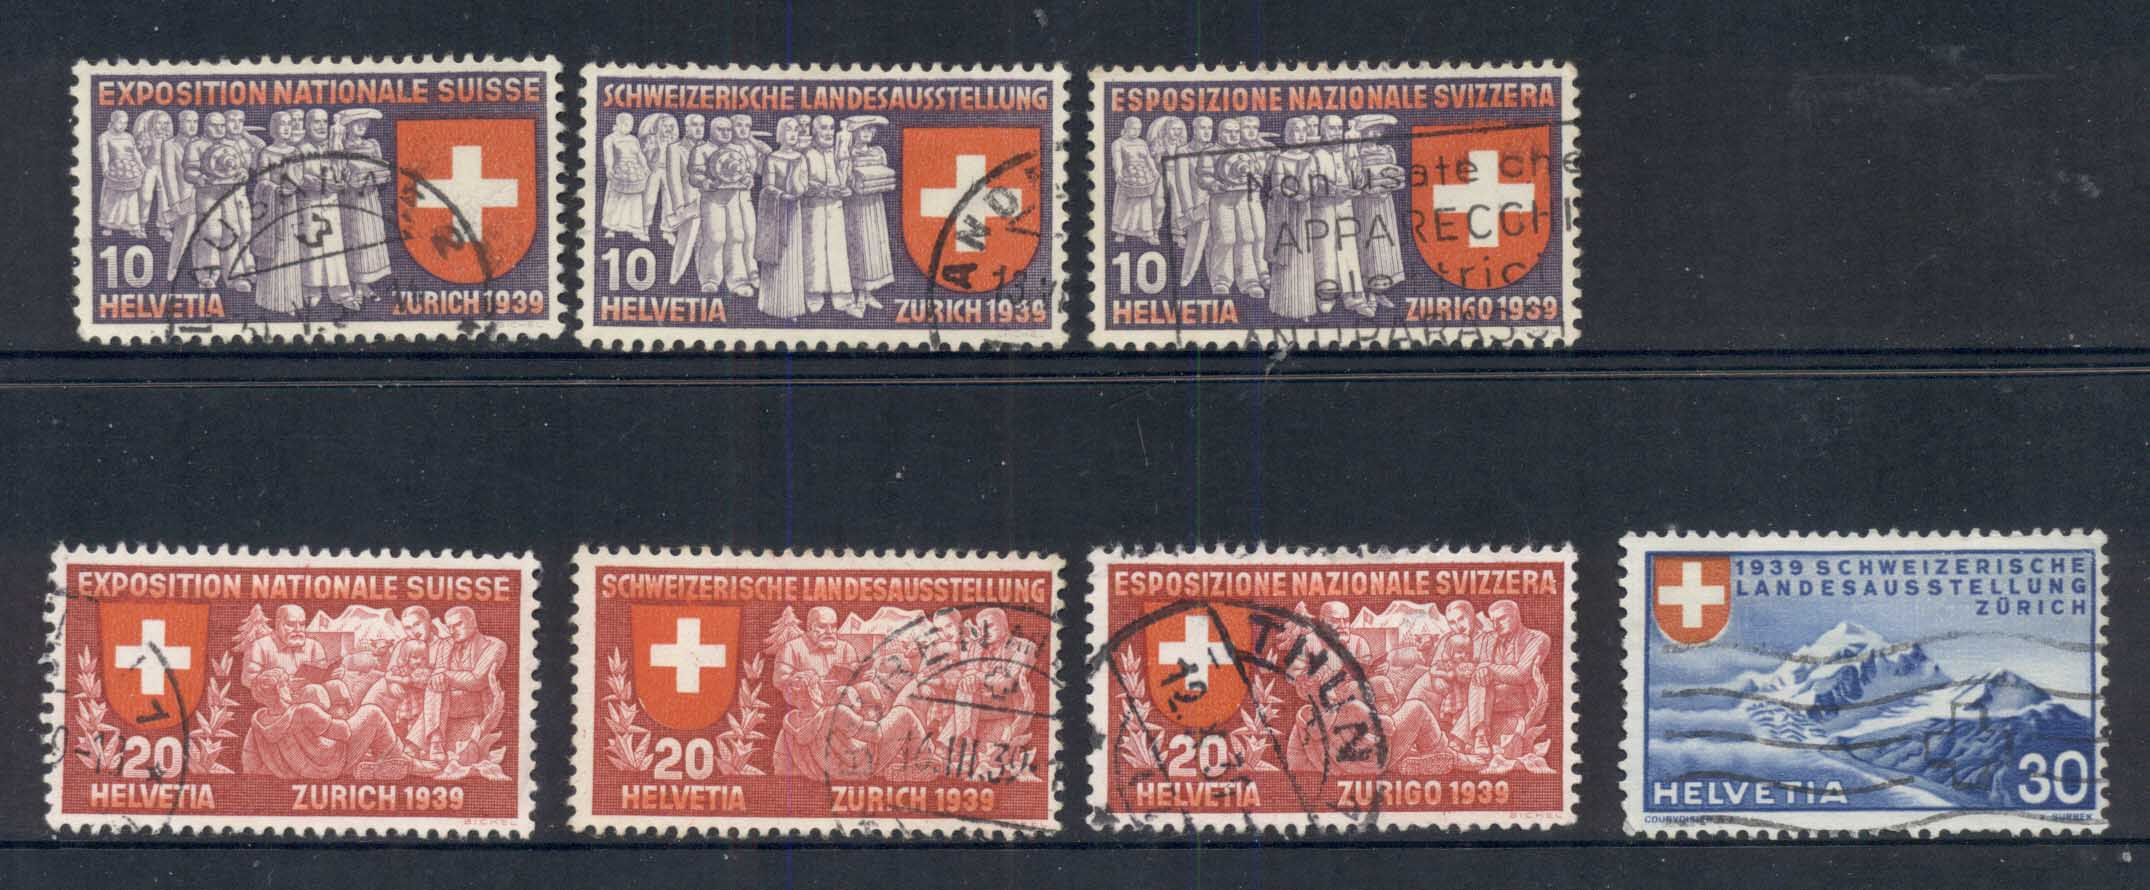 Switzerland 1939 National Exposition Asst (7/9( FU